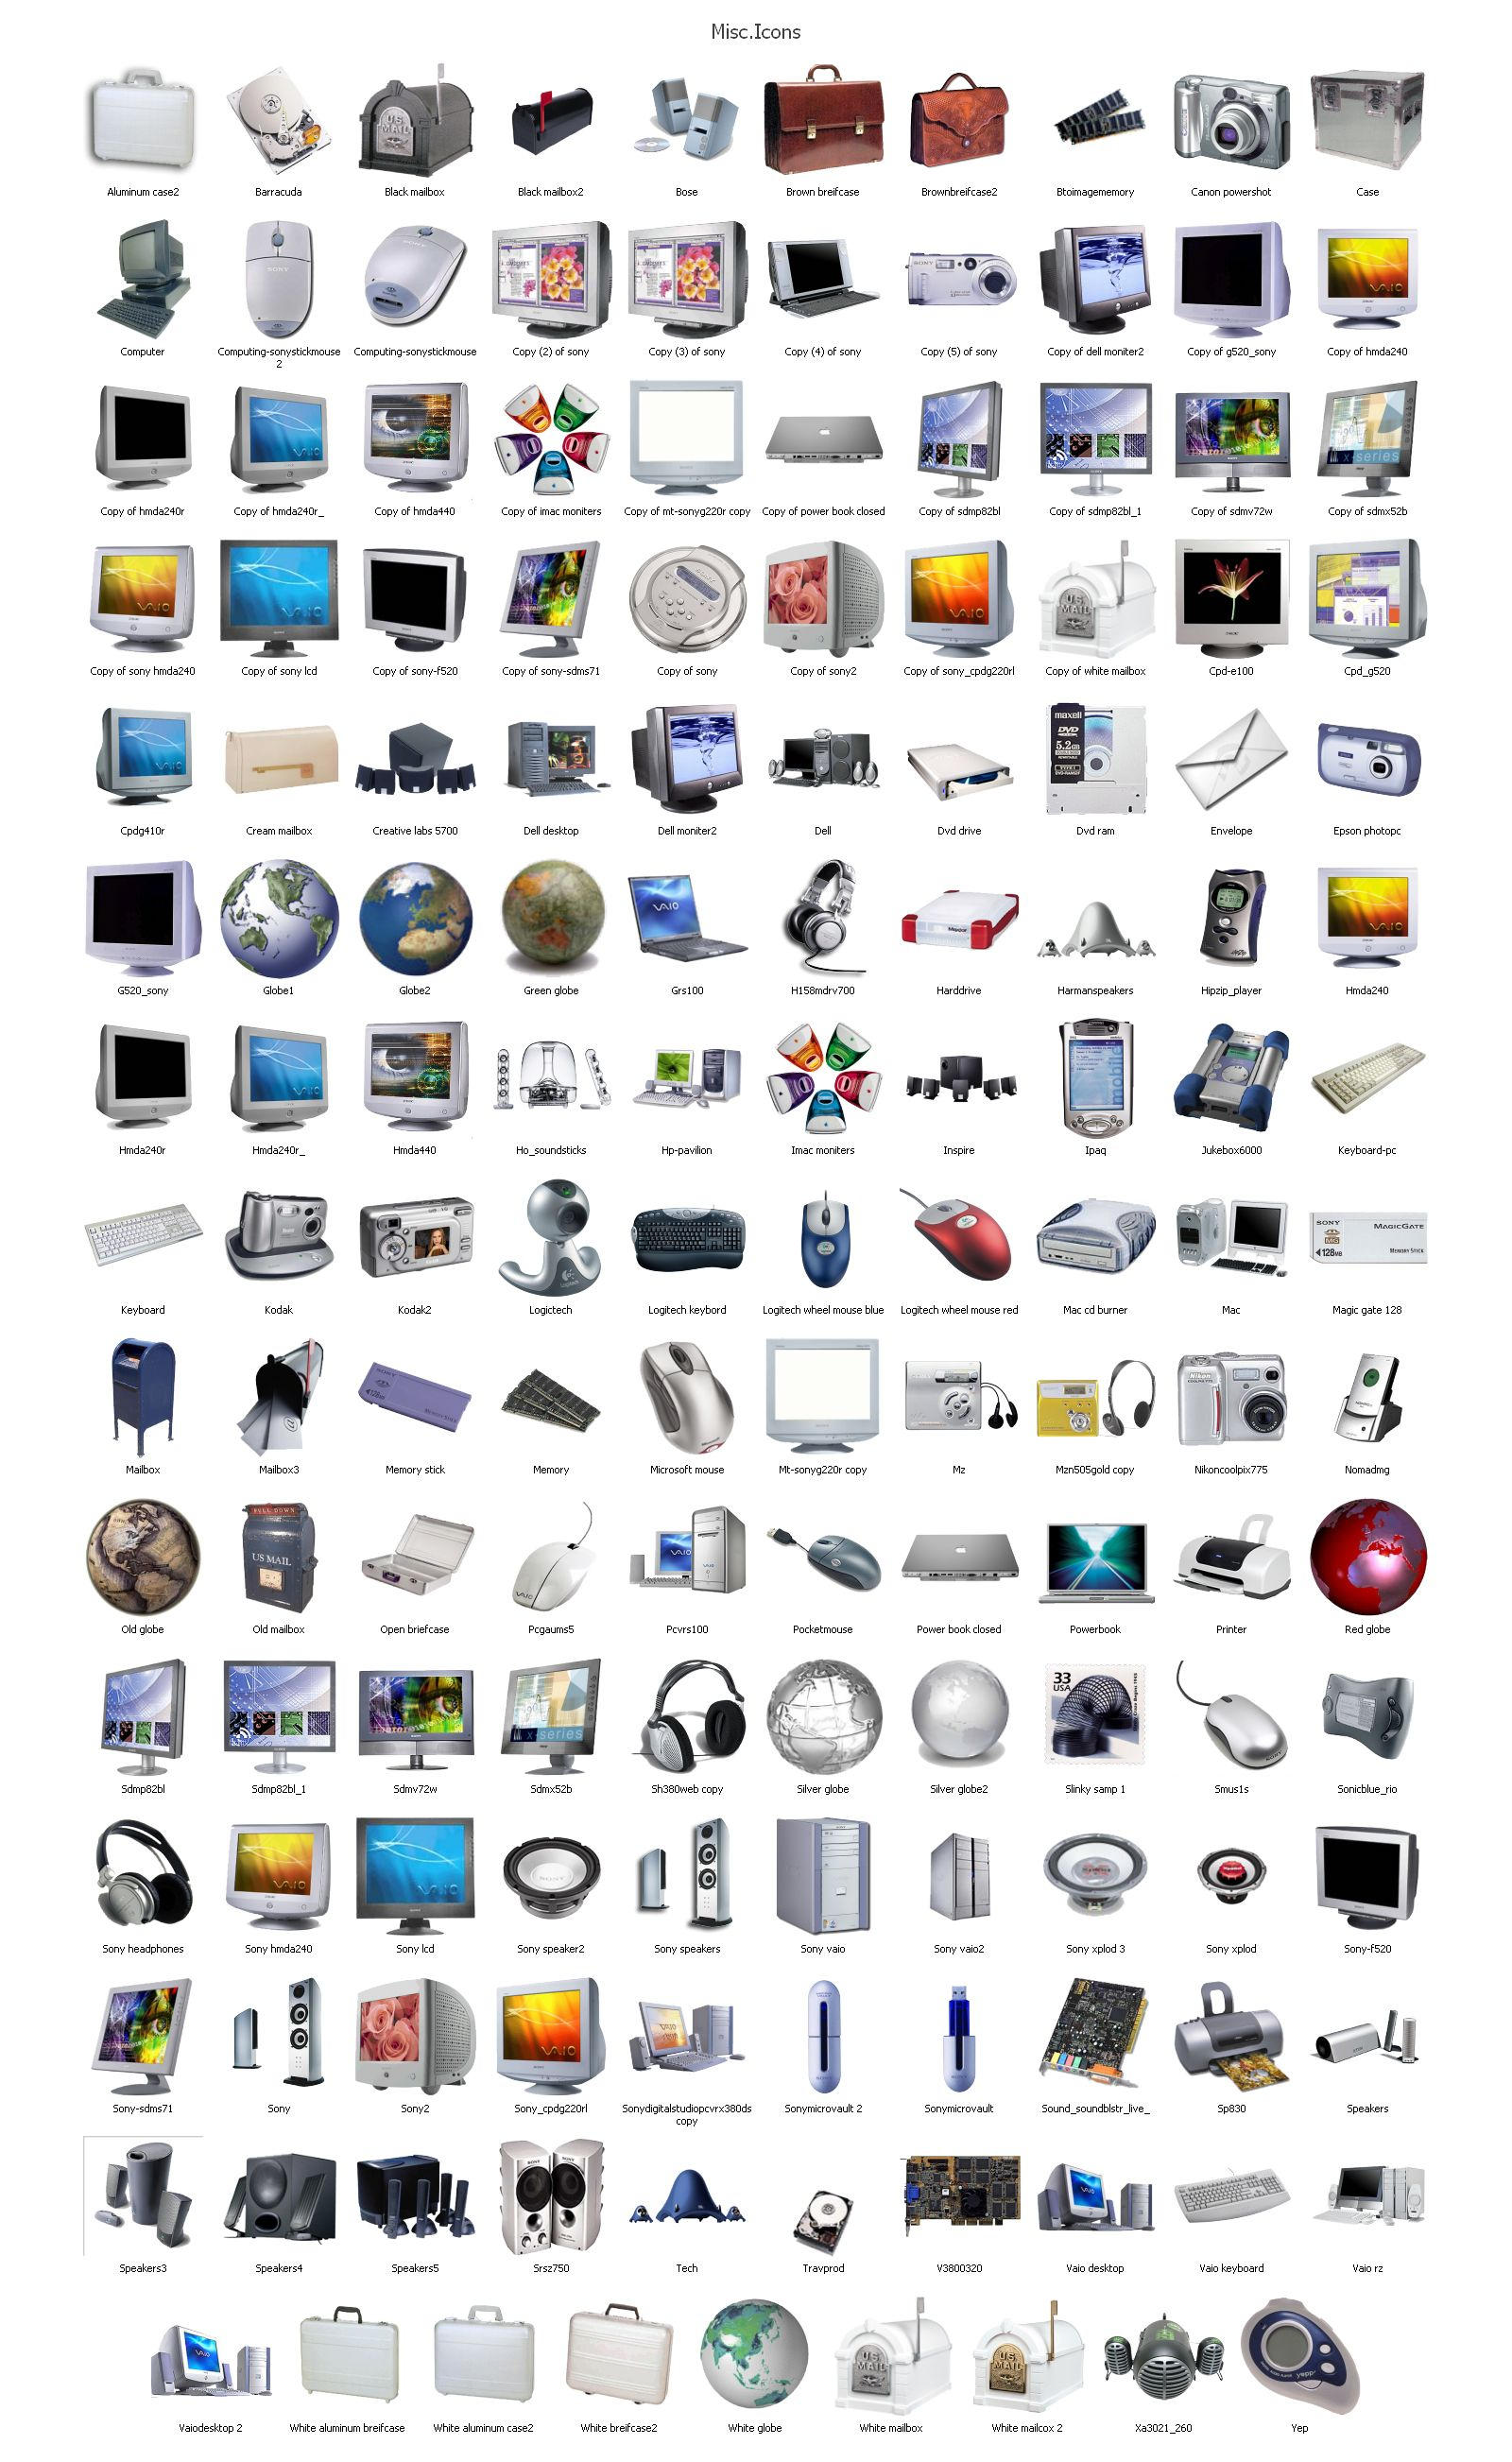 Misc computer Icons part 1 by heylove